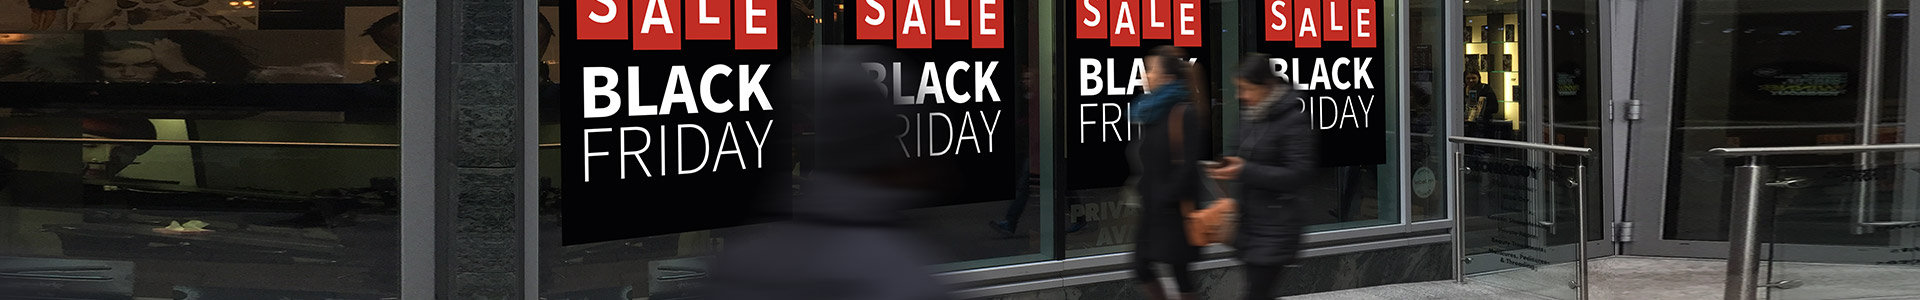 black friday sale posters